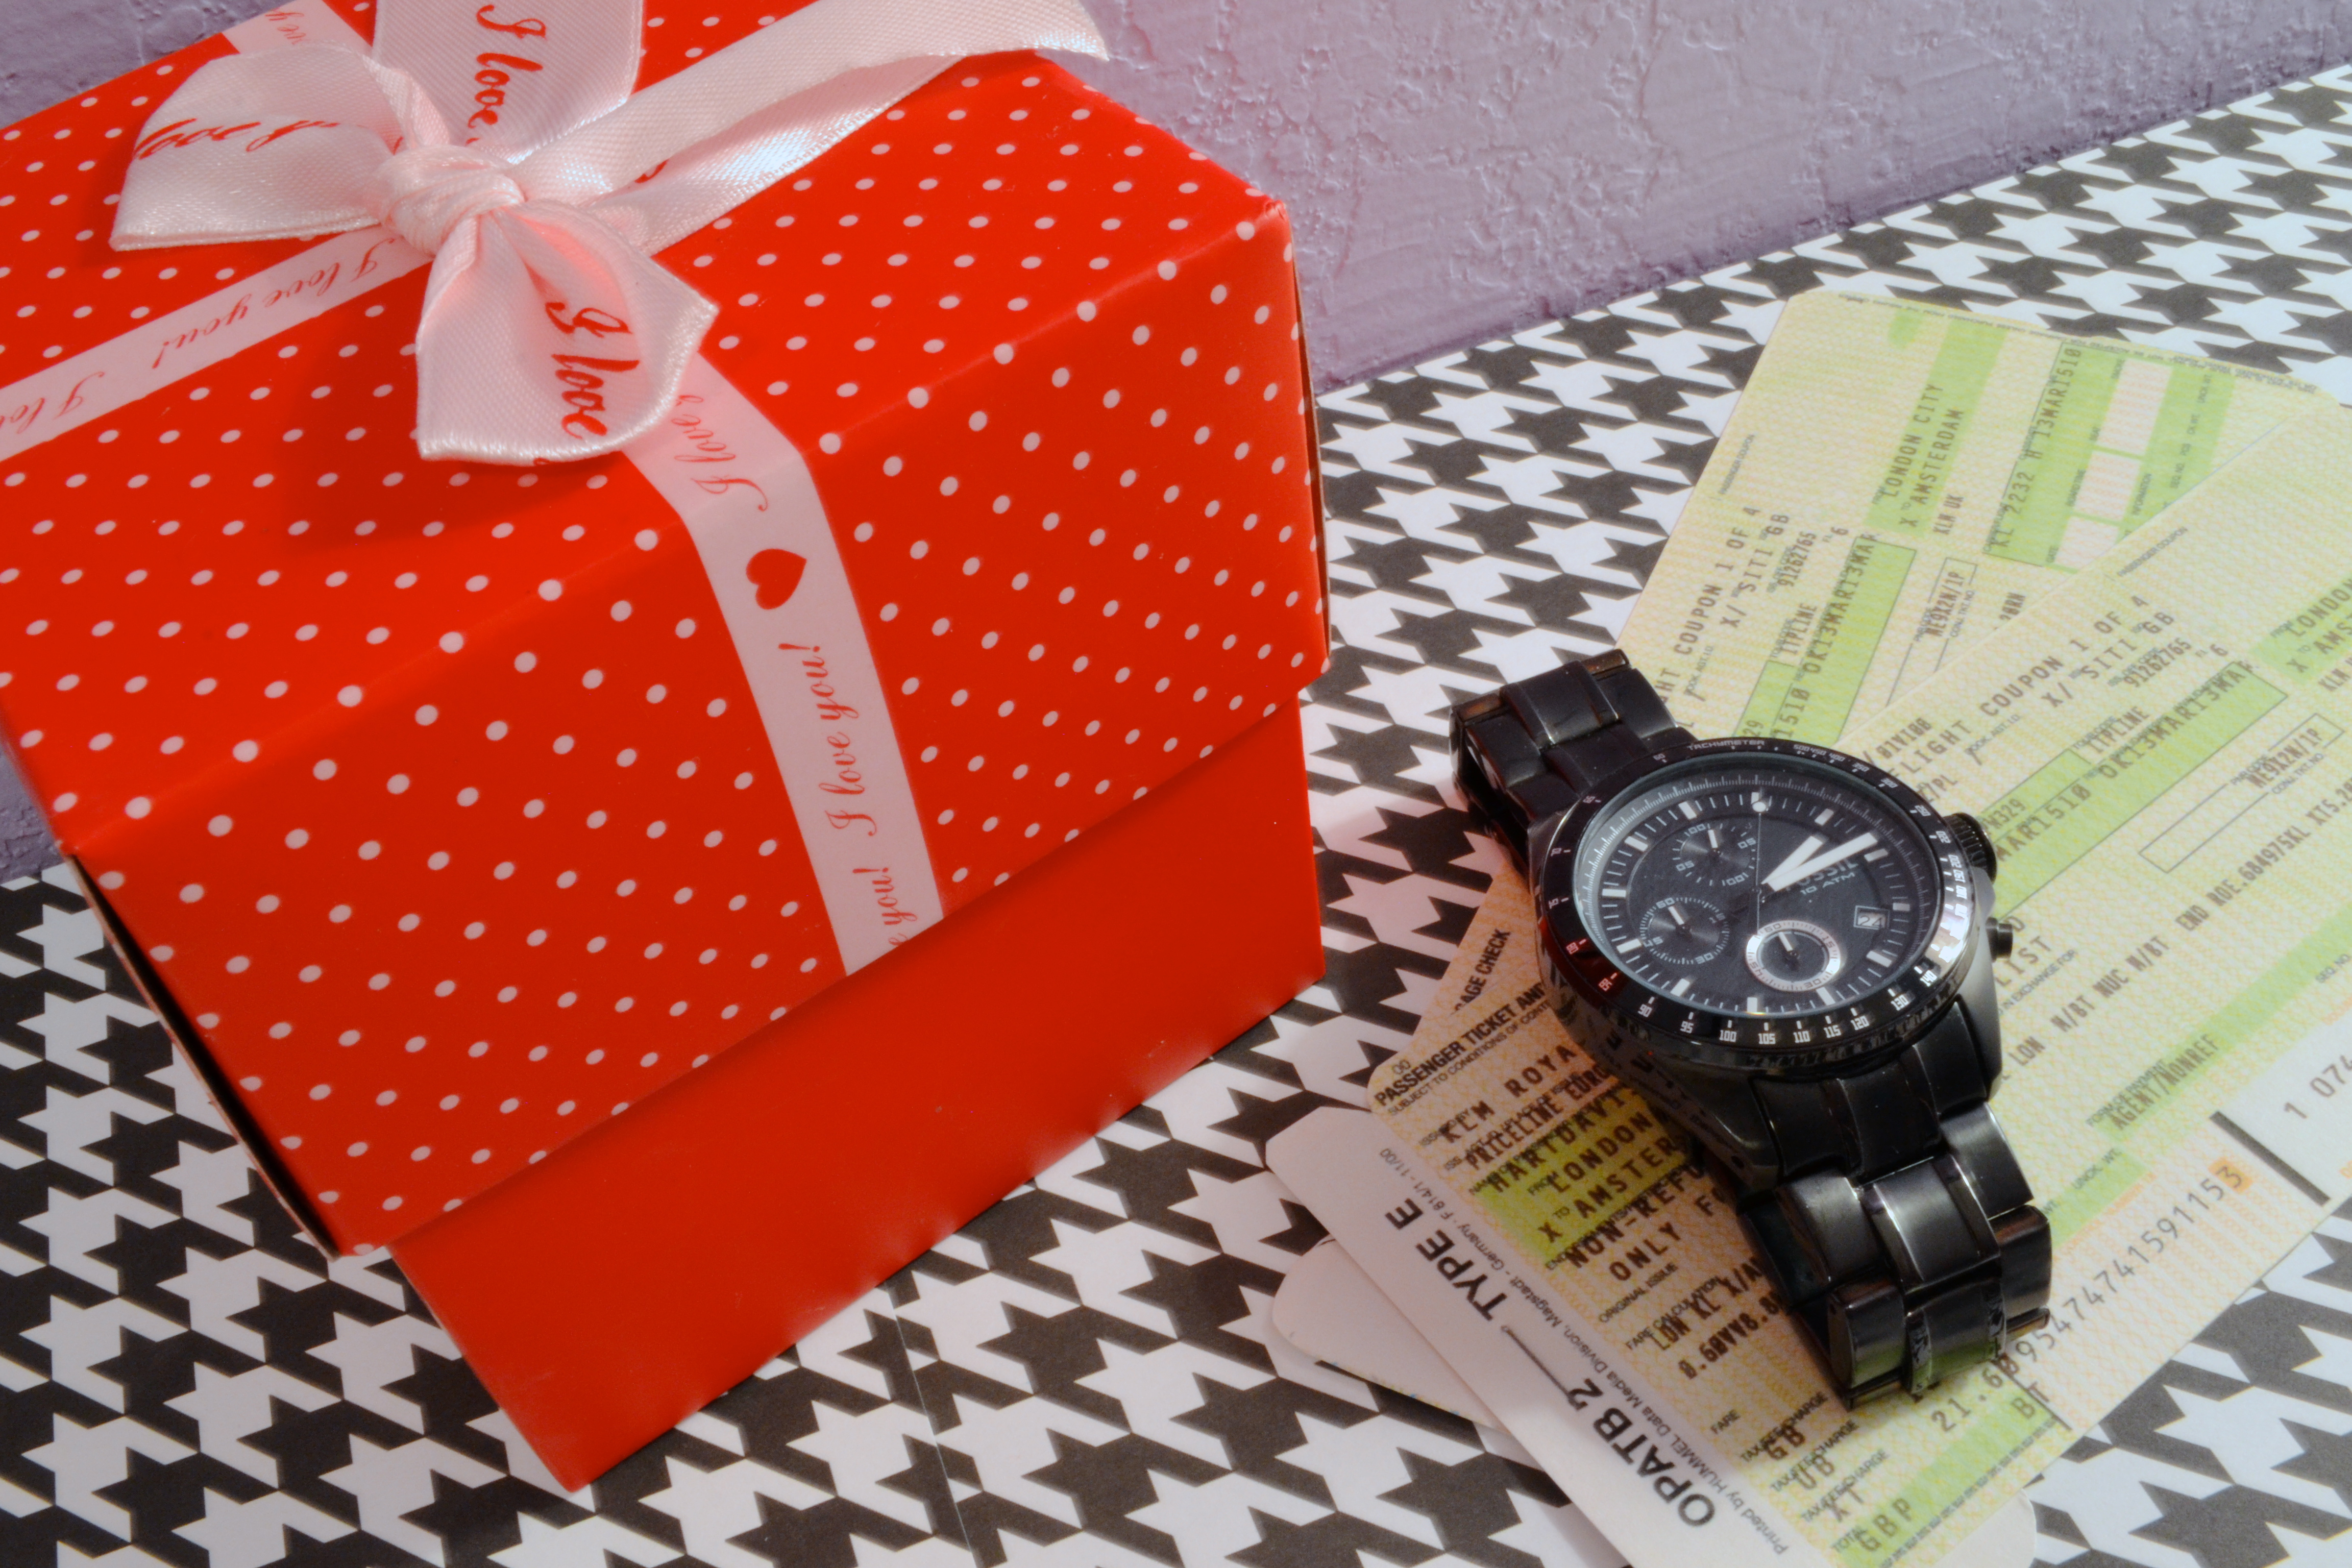 First wedding anniversary gifts for your husband